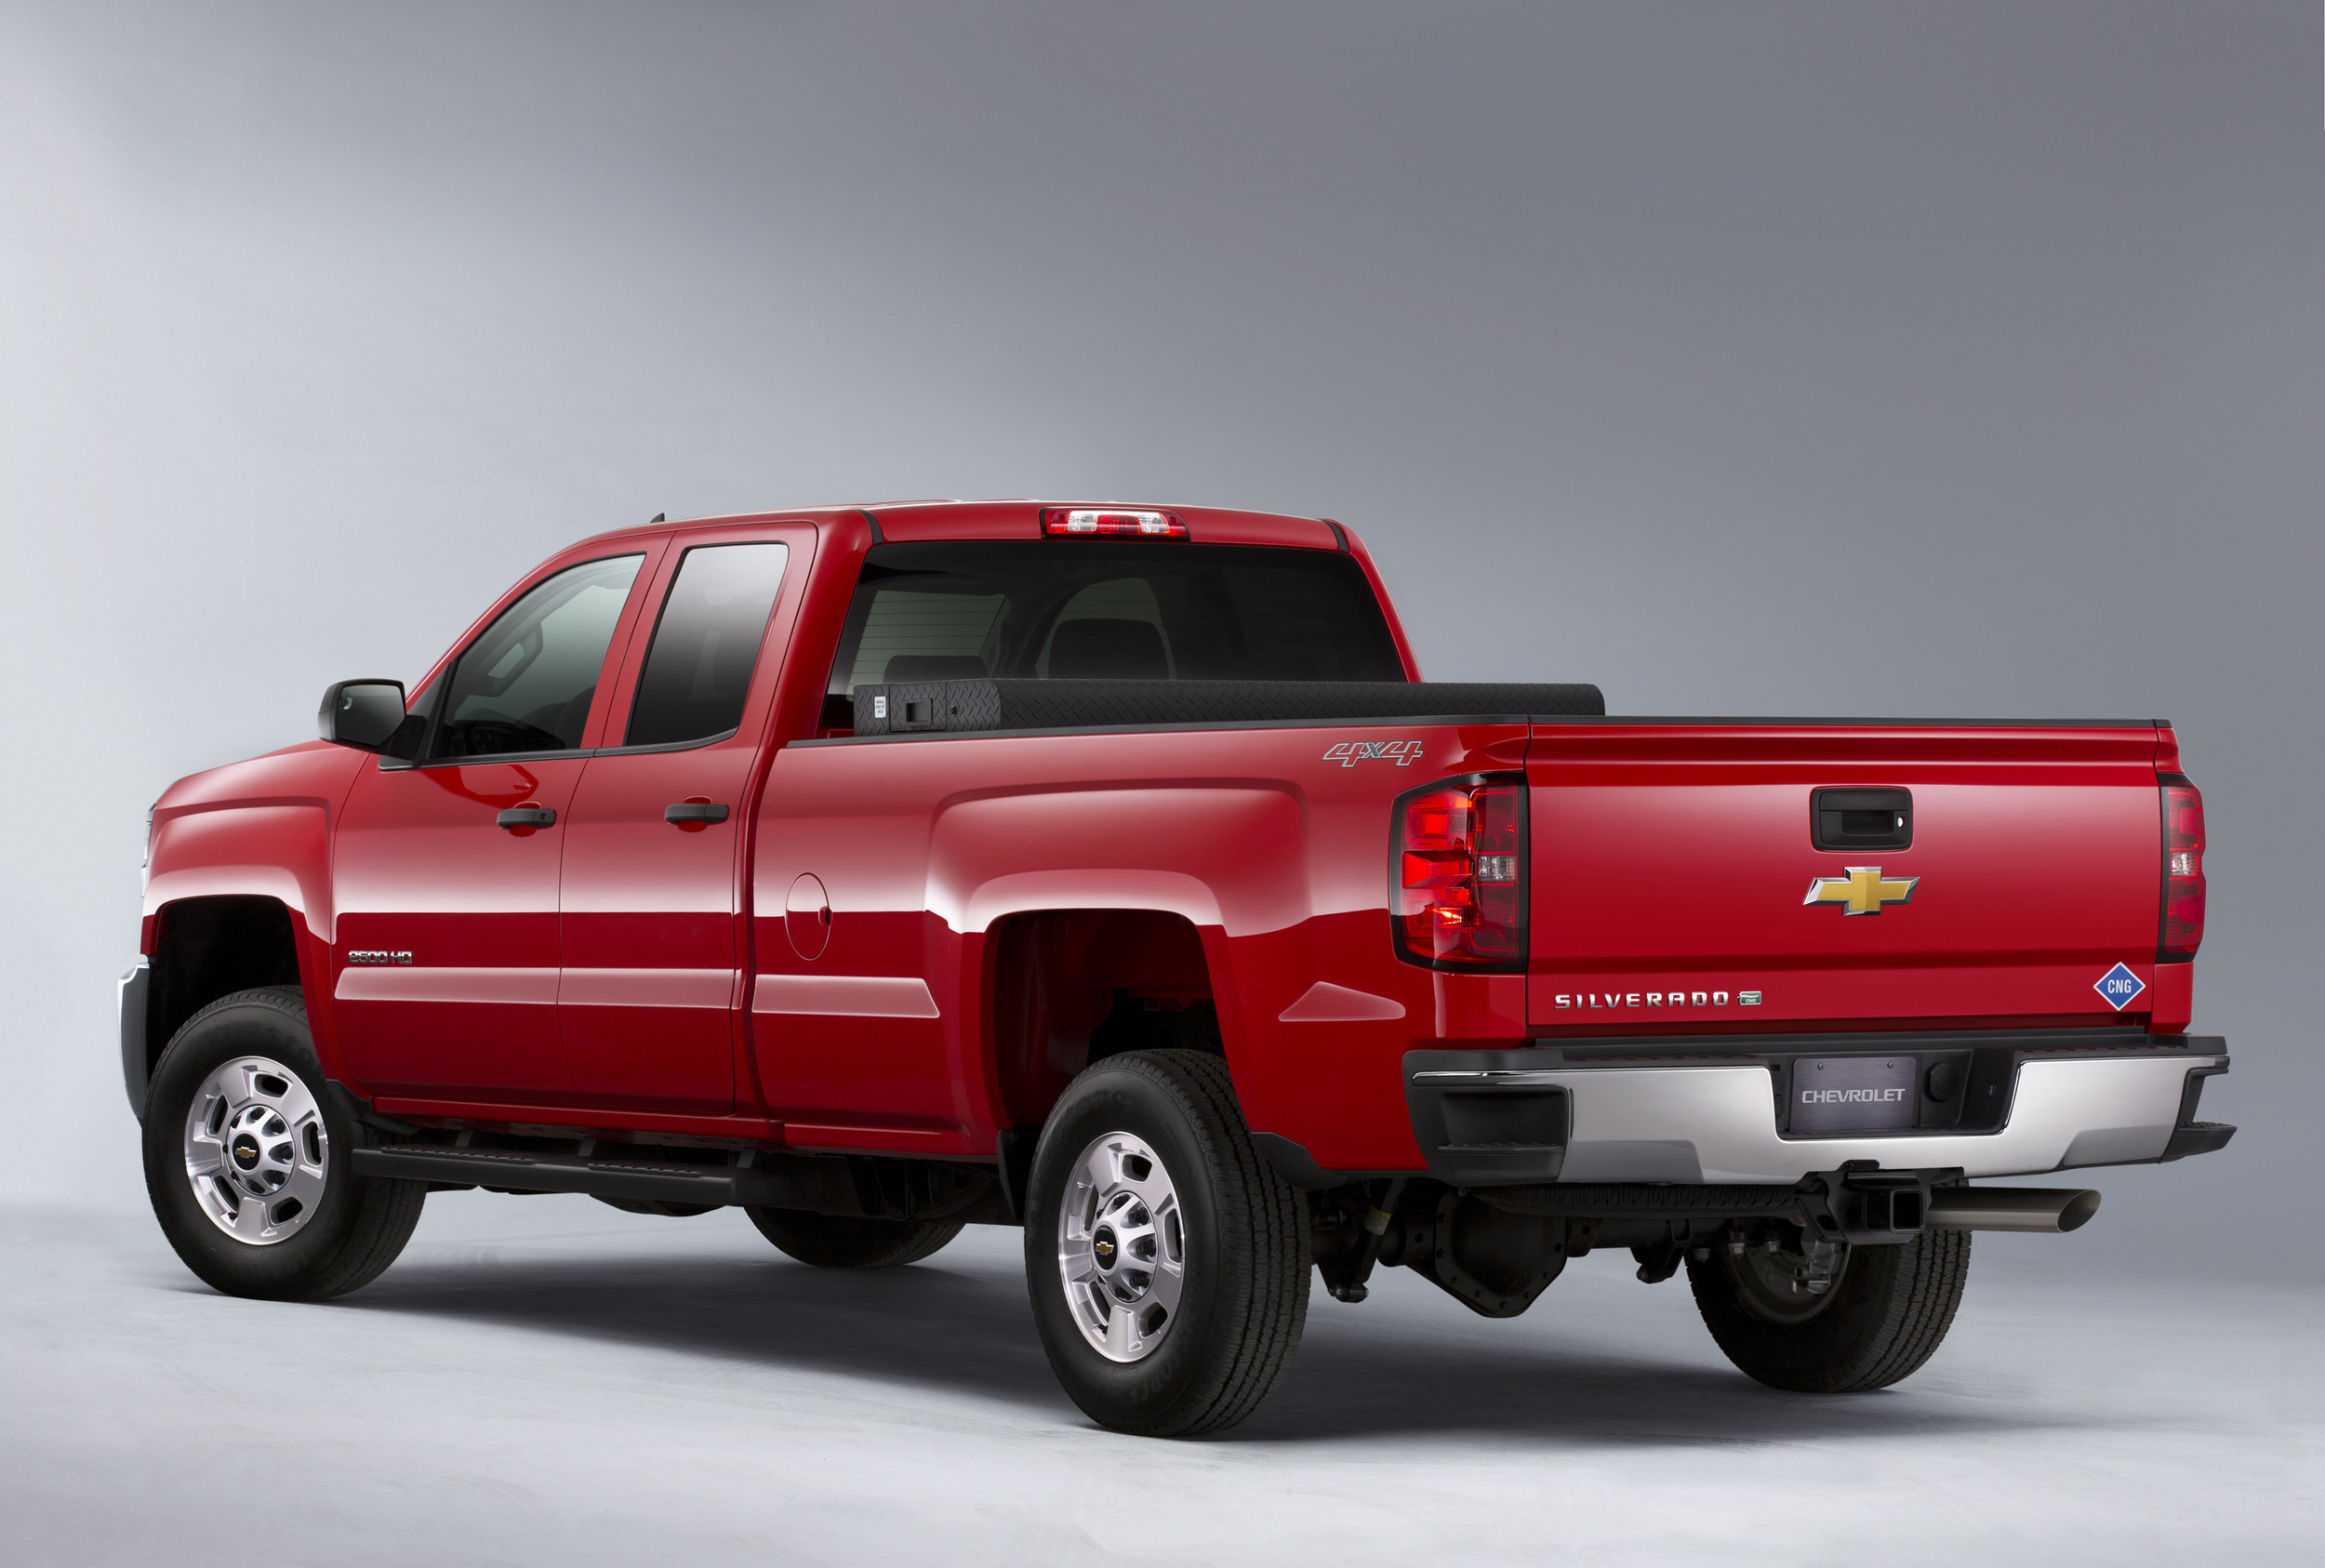 New 2015 Chevrolet Silverado 2500 for sale near Long Island NY Valley